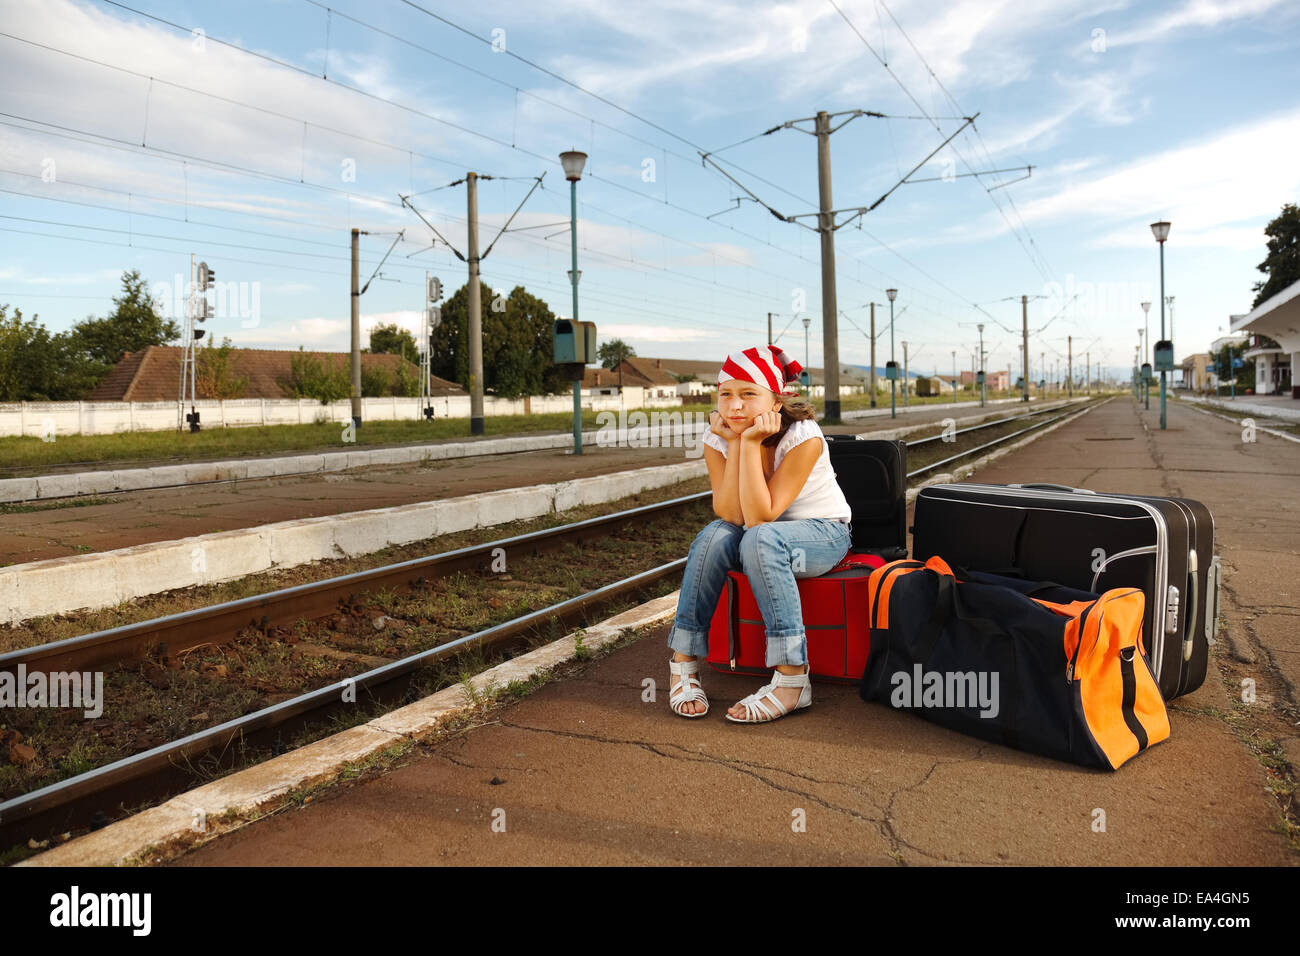 map reading comp with Stock Photo Young Girl Sitting On Luggage And Waiting For Train In The Station 75088977 on Unit Three 1750 1914 in addition F 12 Pics furthermore J 20 Pics as well Stock Photo A Woodland Park Information Board And Map 23824860 additionally F 22 Pics.